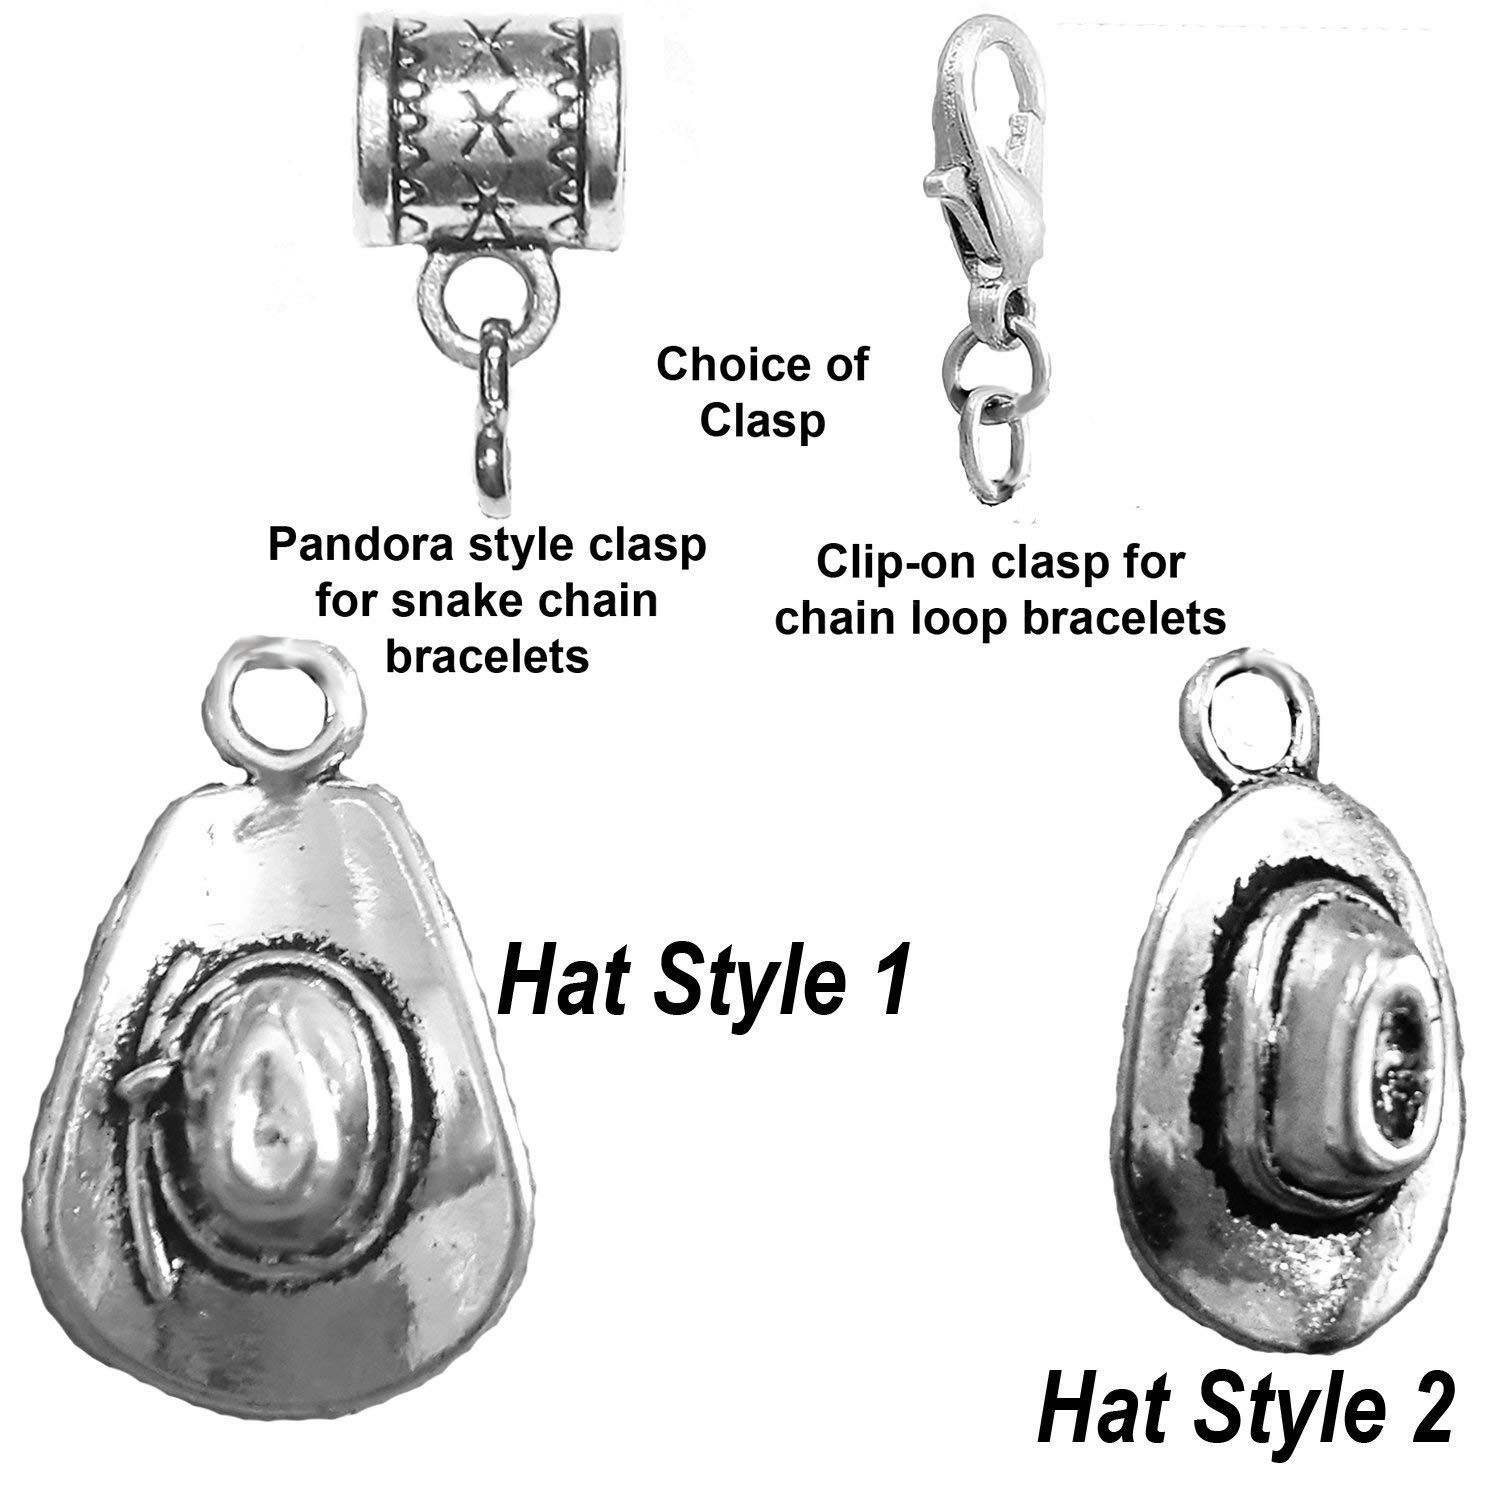 """Cowboy hat charm"" antique silver charm in 2 styles by Mossy Cabin for large hole snake chain charm bracelets, or clip-on clasp to add to a chain bracelet, neck chain or key chain"